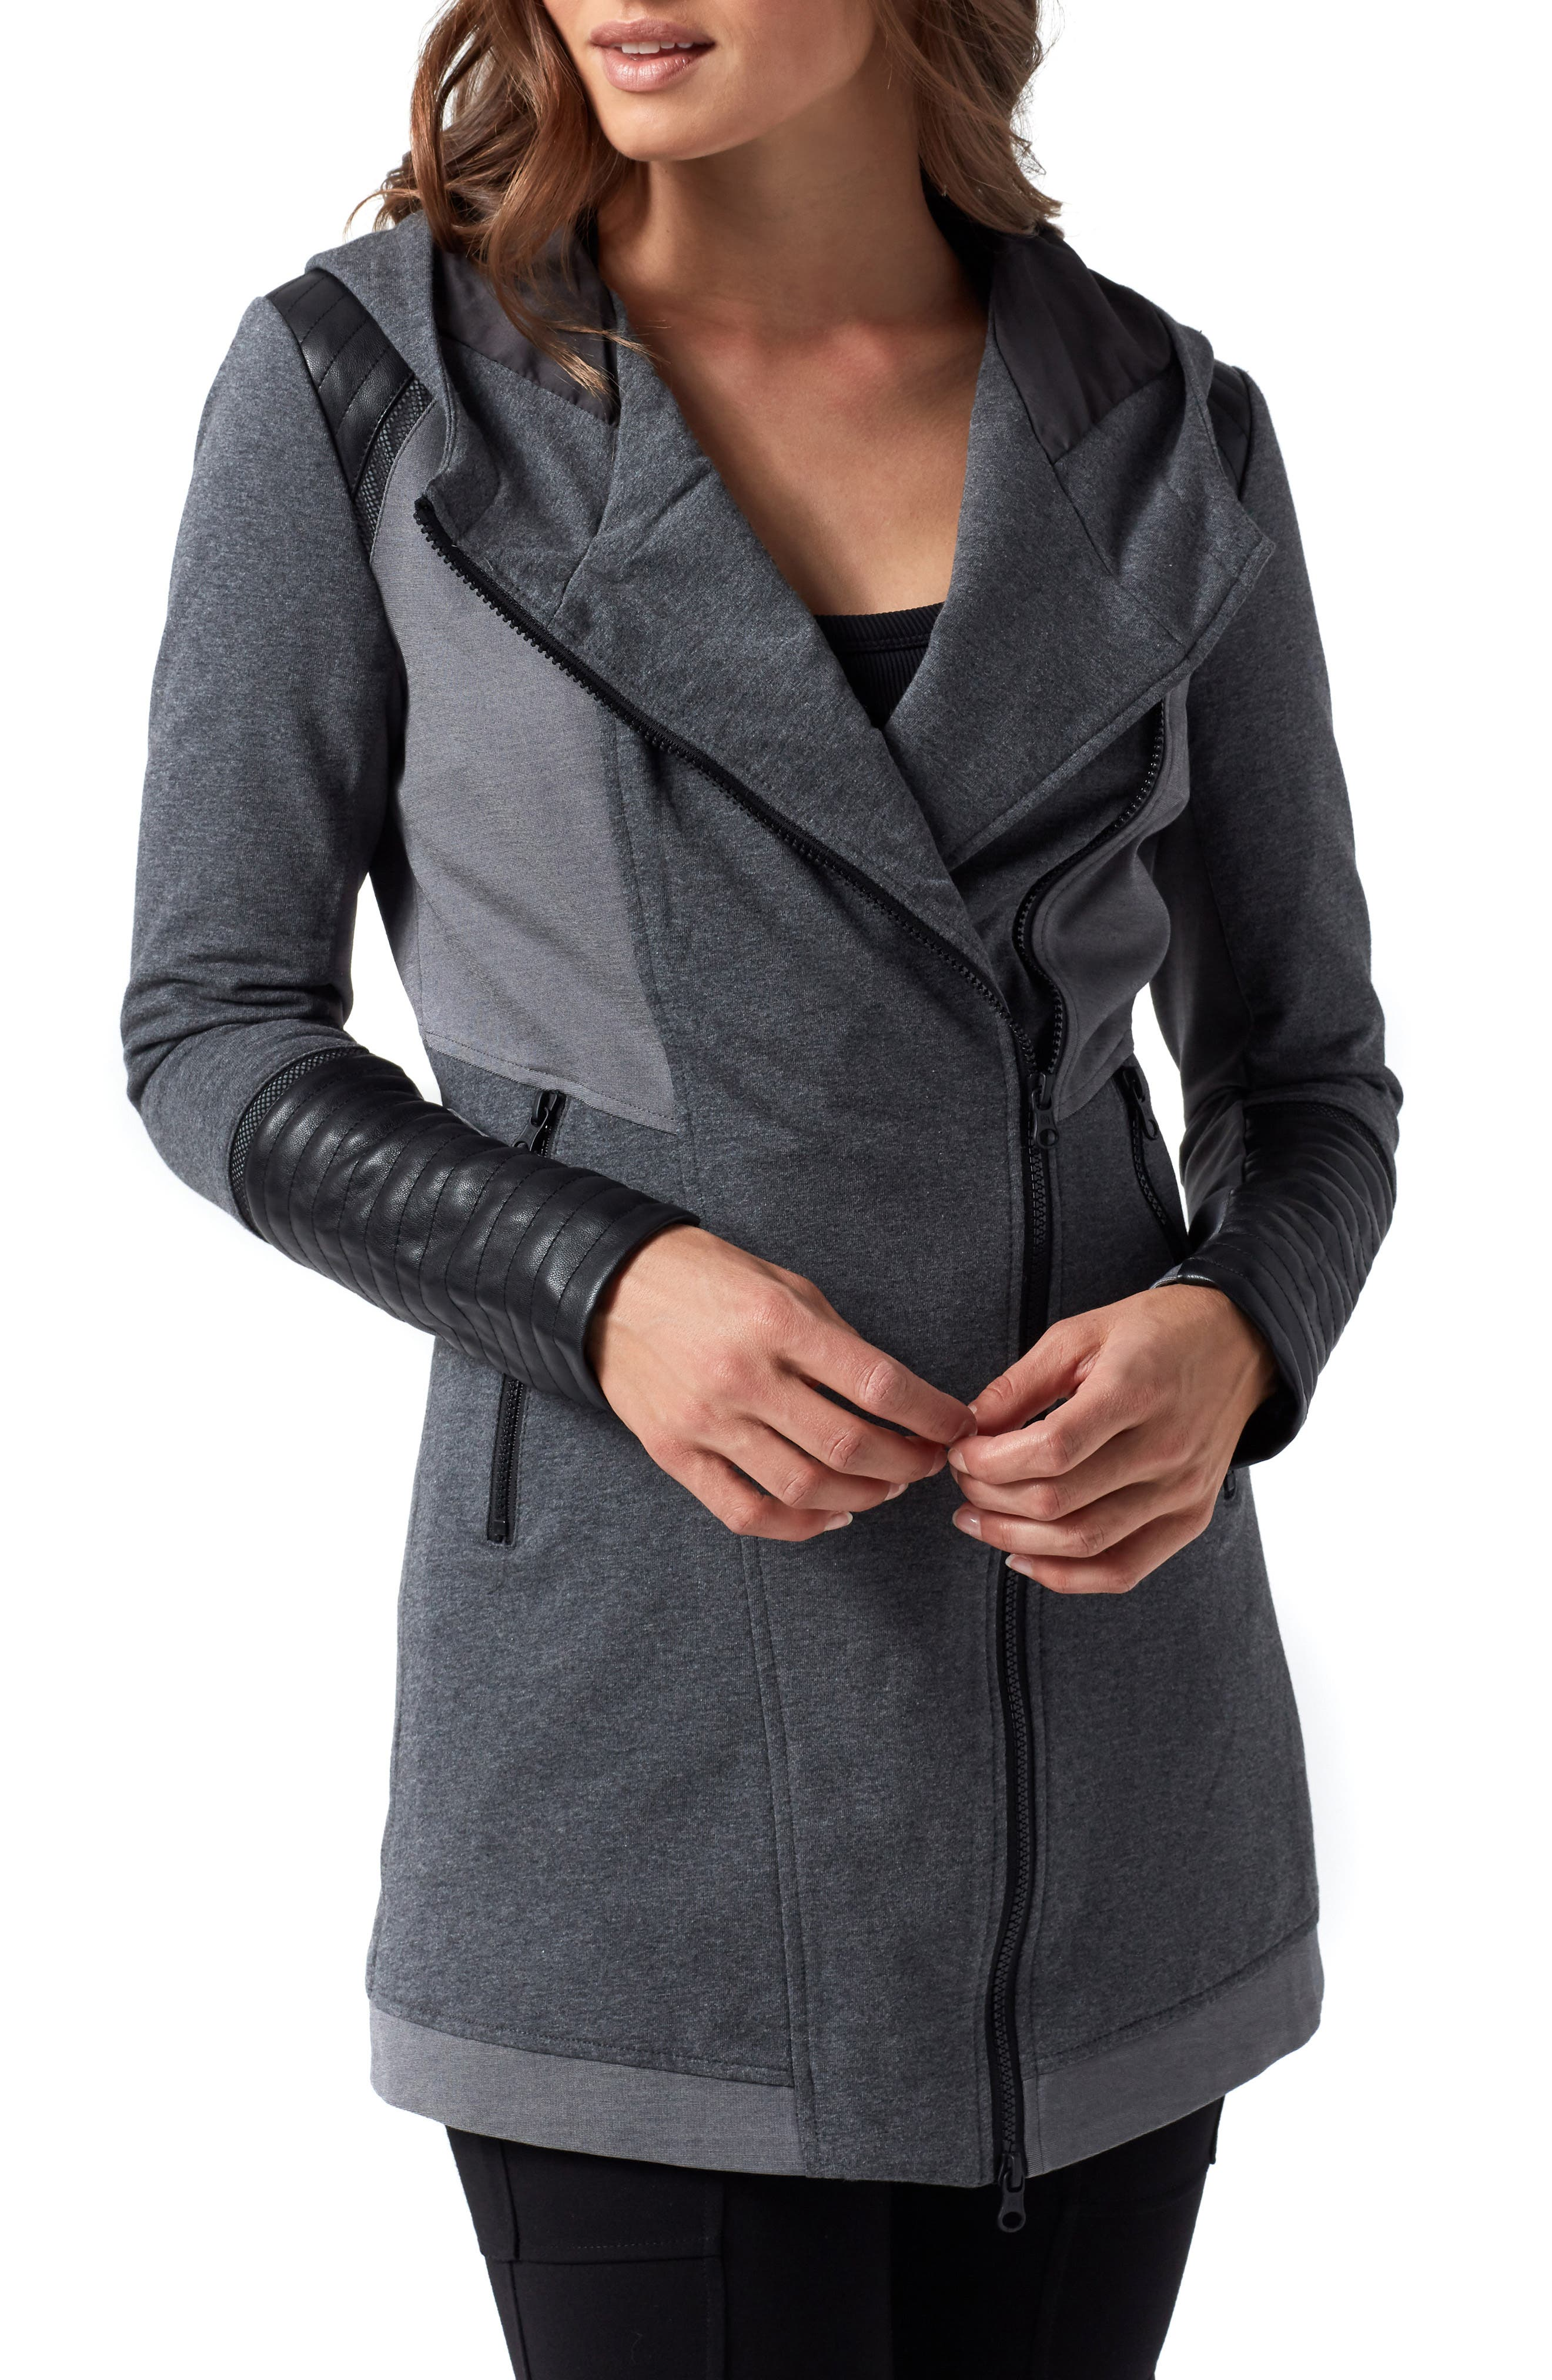 BLANC NOIR, Traveller Mesh Inset Jacket, Main thumbnail 1, color, CHARCOAL